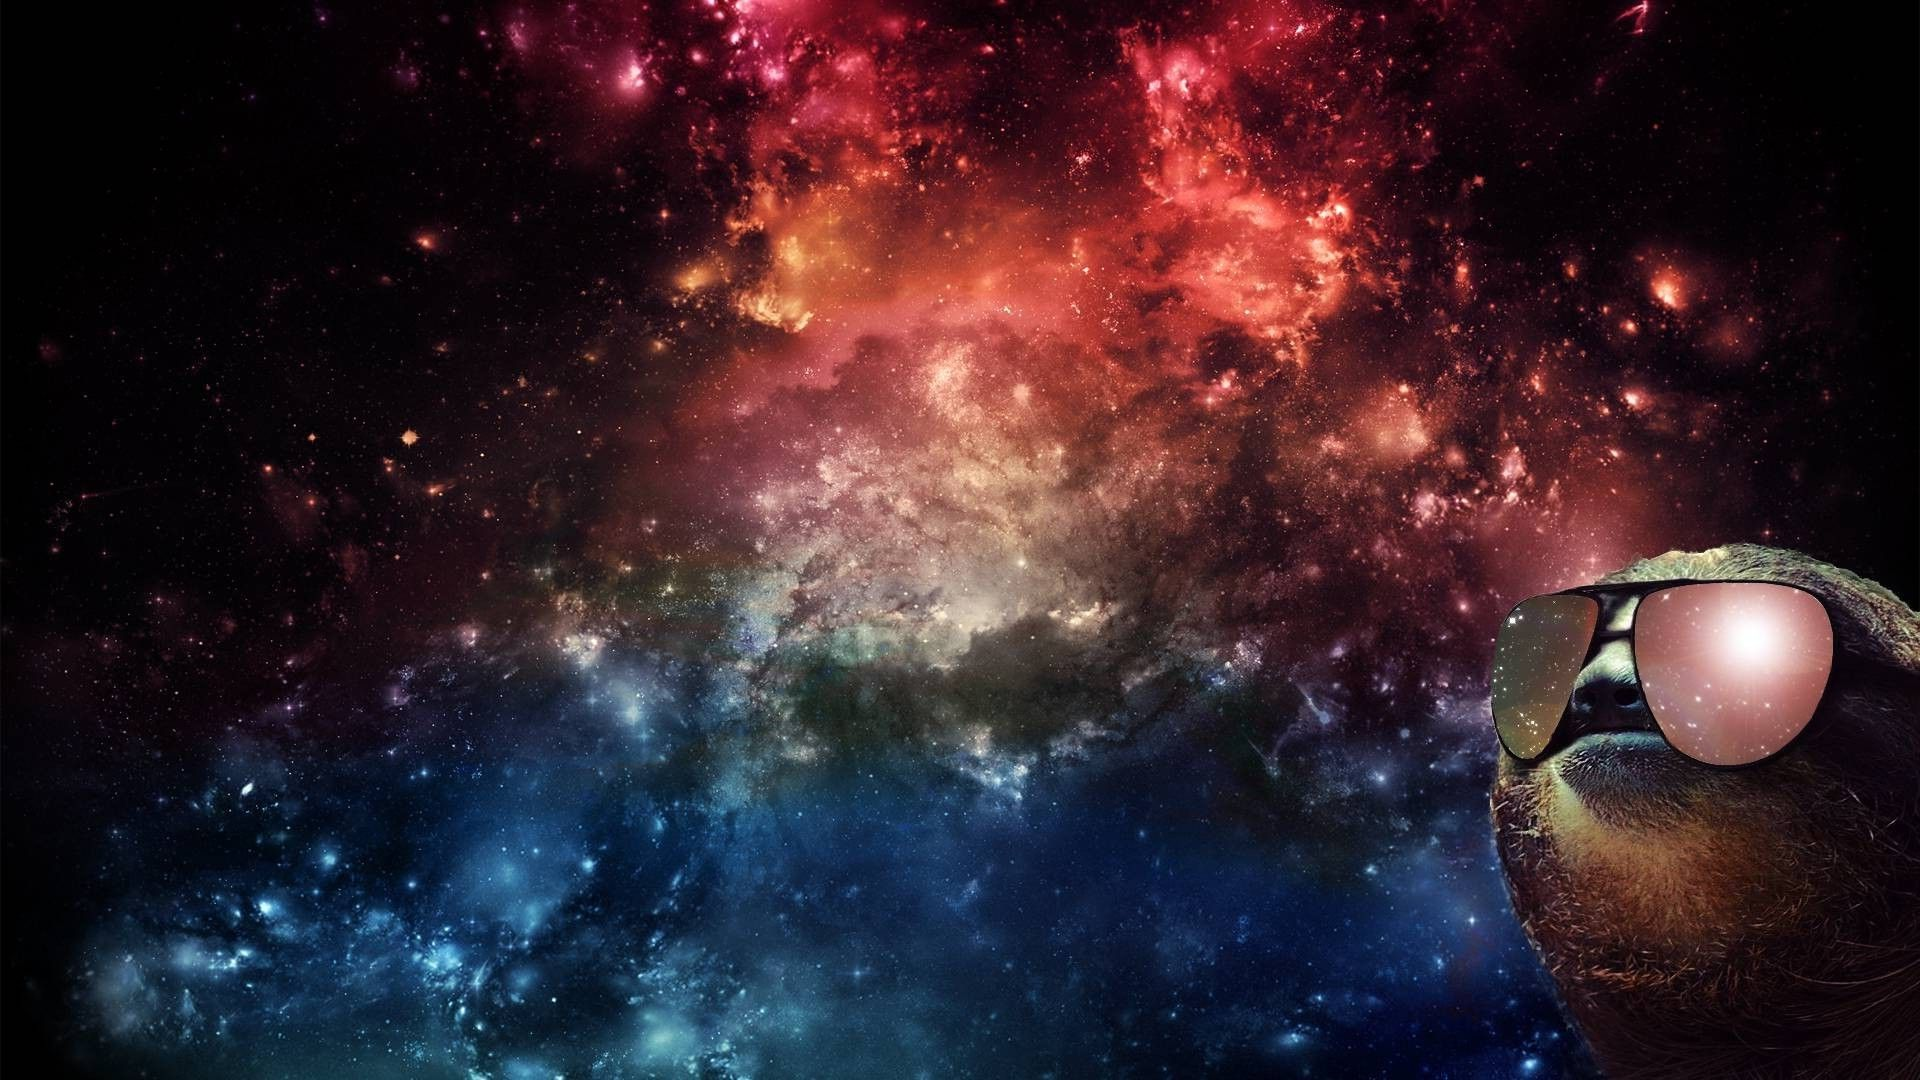 Free Space Background laptop wallpaper